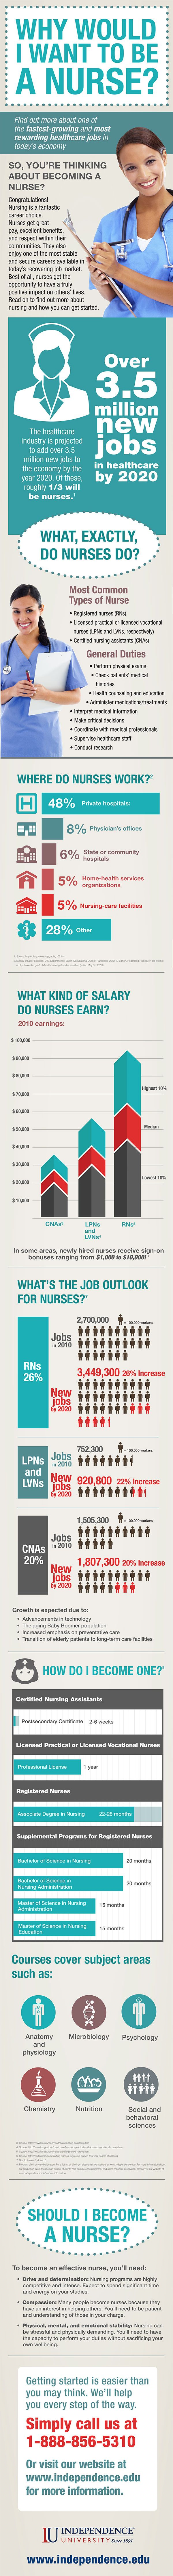 Why Would I Want to be a Nurse? - Infographic for Health Science students